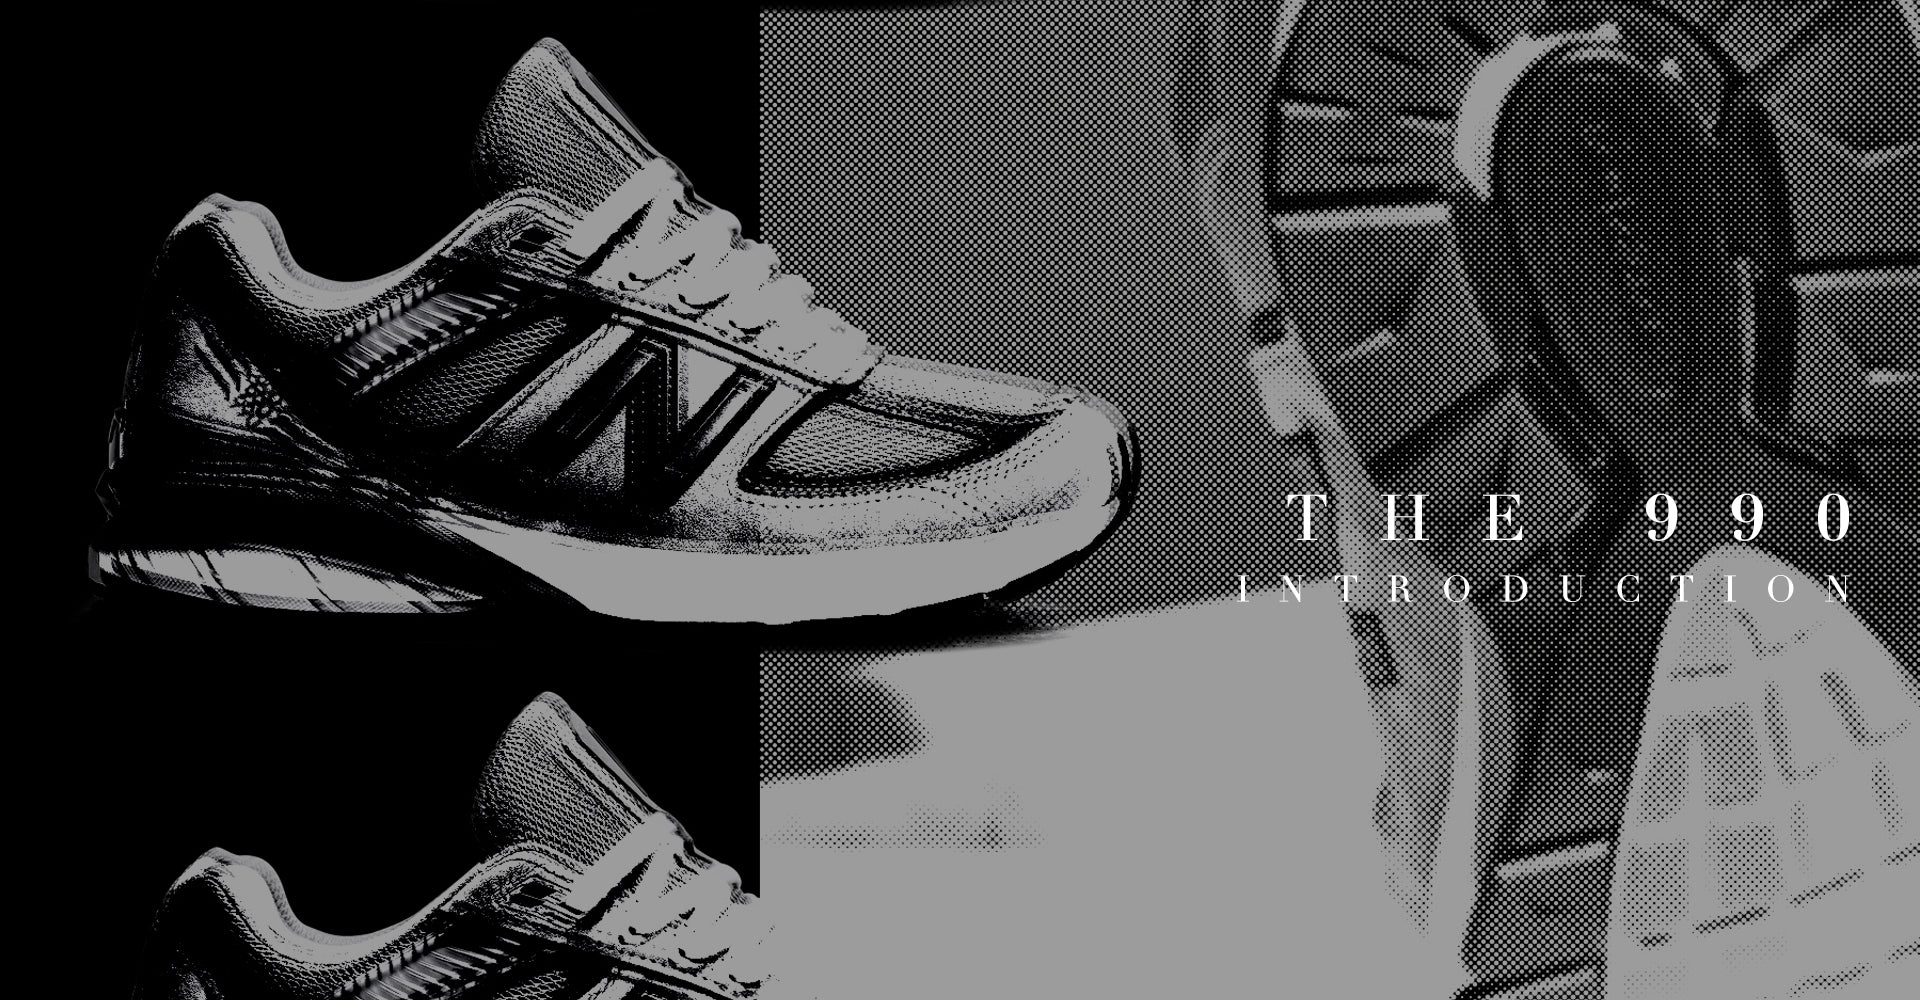 INTRODUCTION: The 990